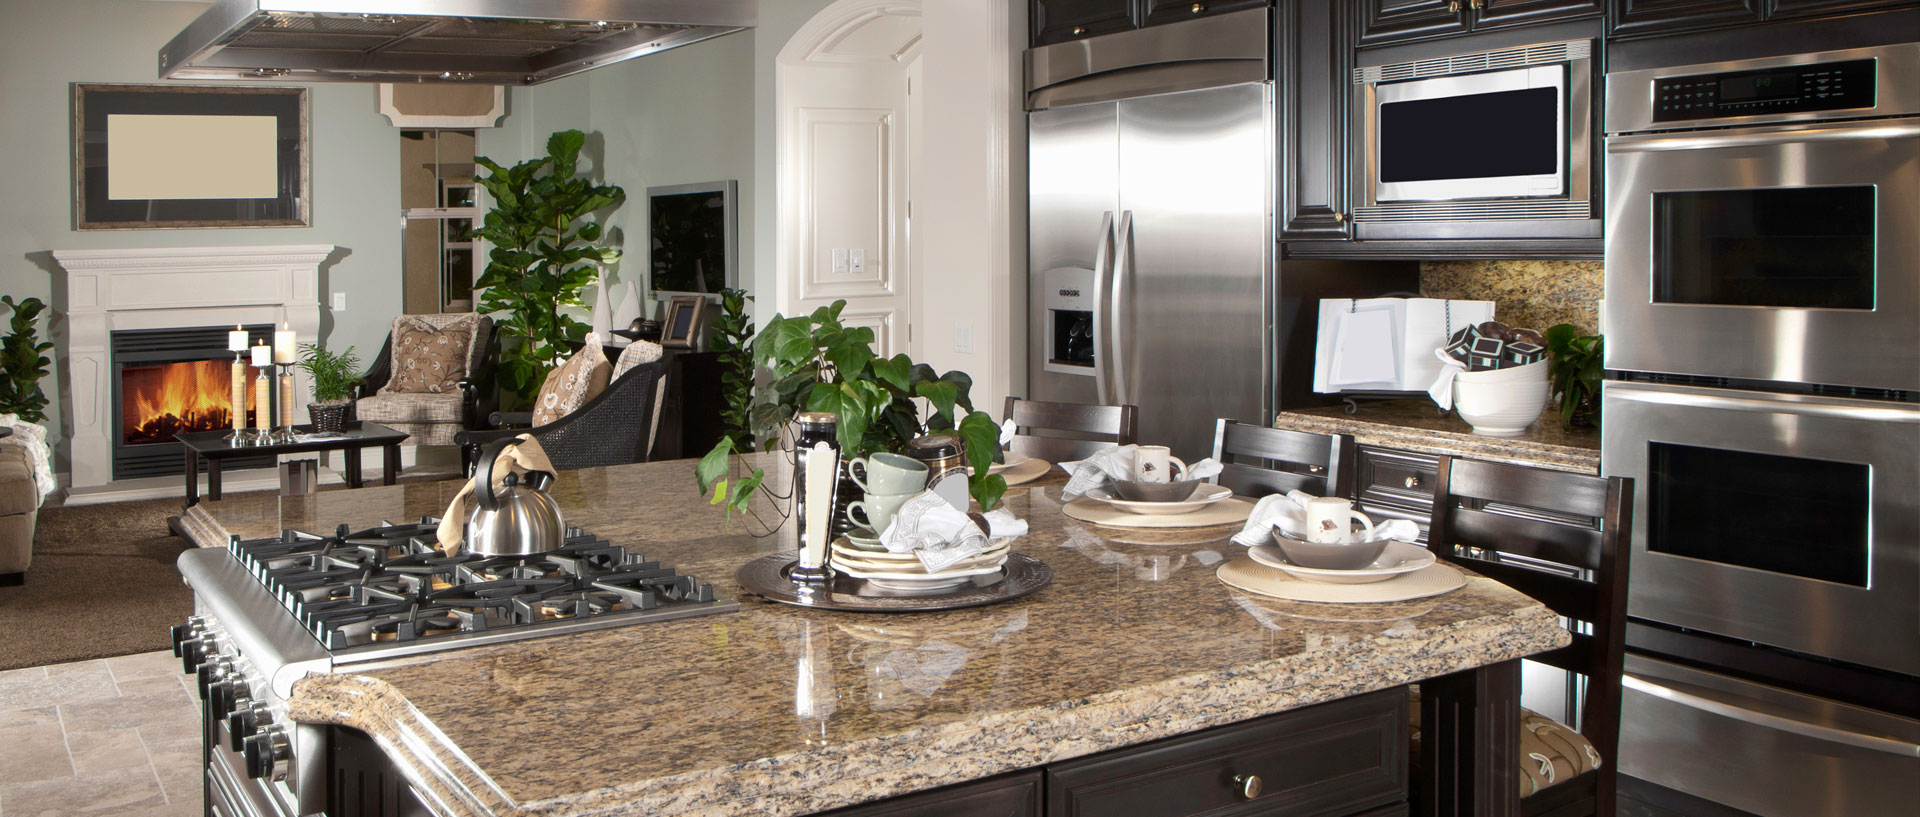 Best Home Kitchen Appliances Most Innovative Home Products Of 2015 Consumer Reports